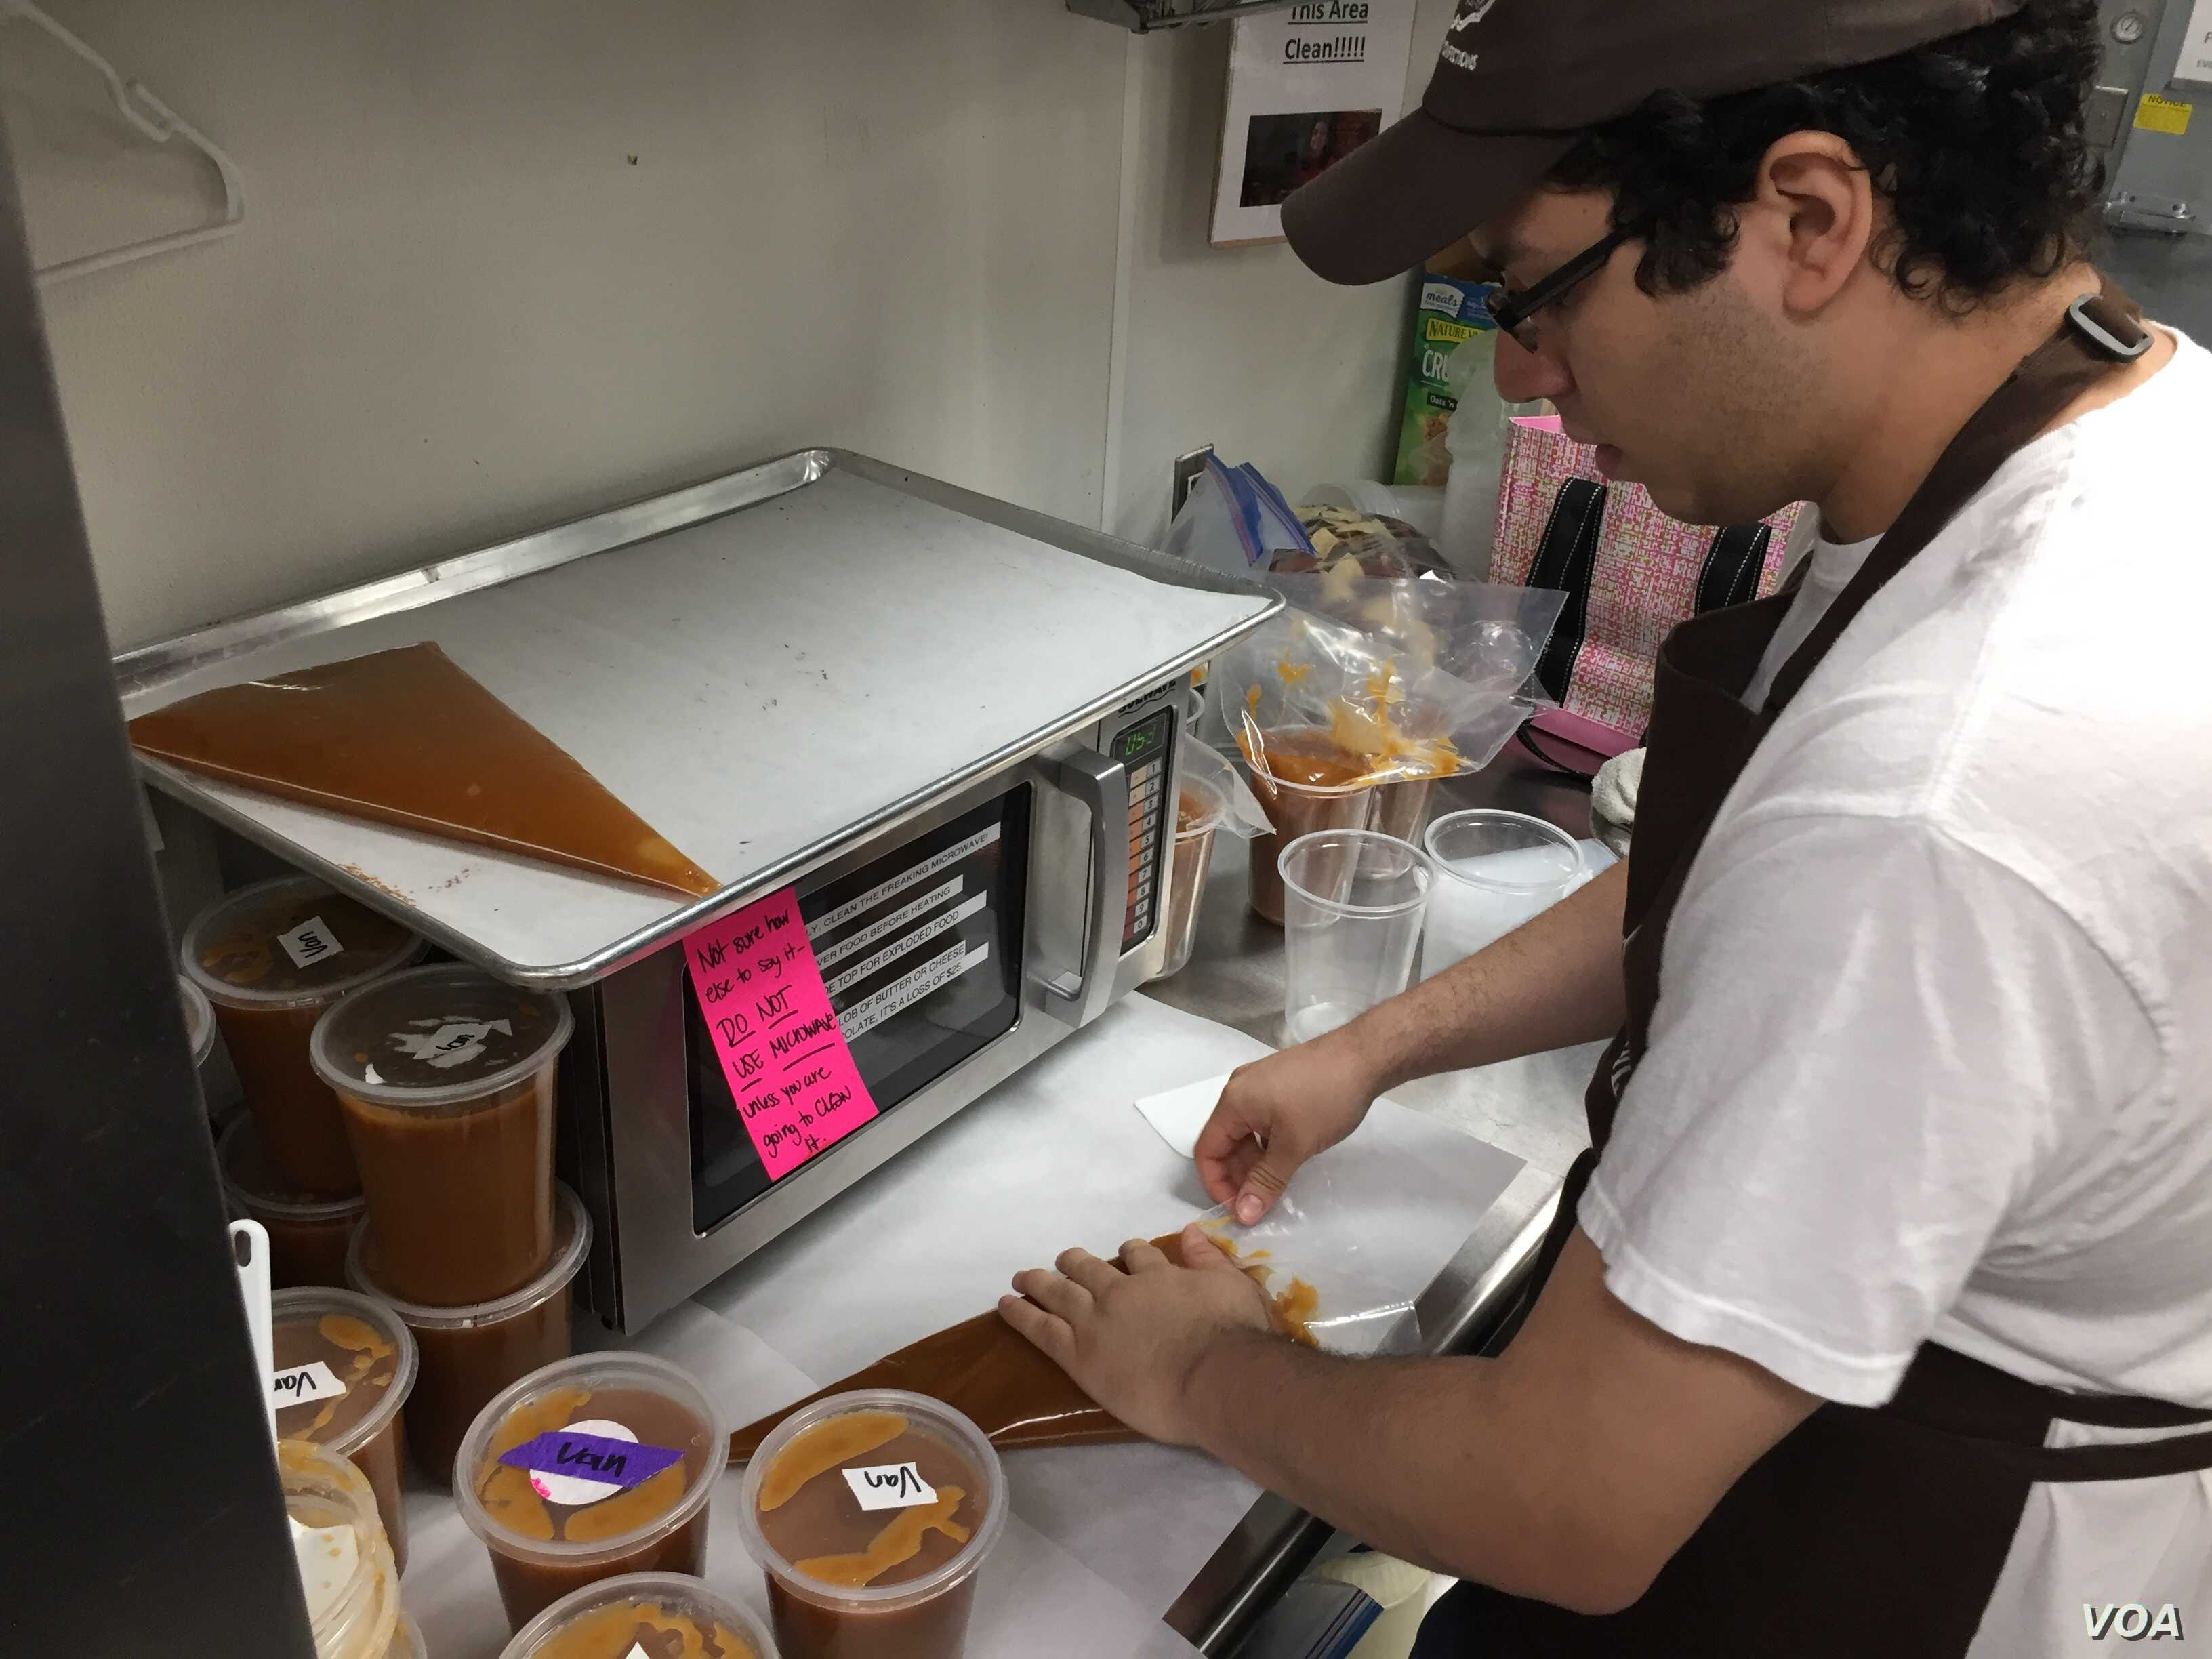 Jonathan Turcios says what he likes best about his job is being part of the chocolate-making team. (VOA Photo/J.Taboh)